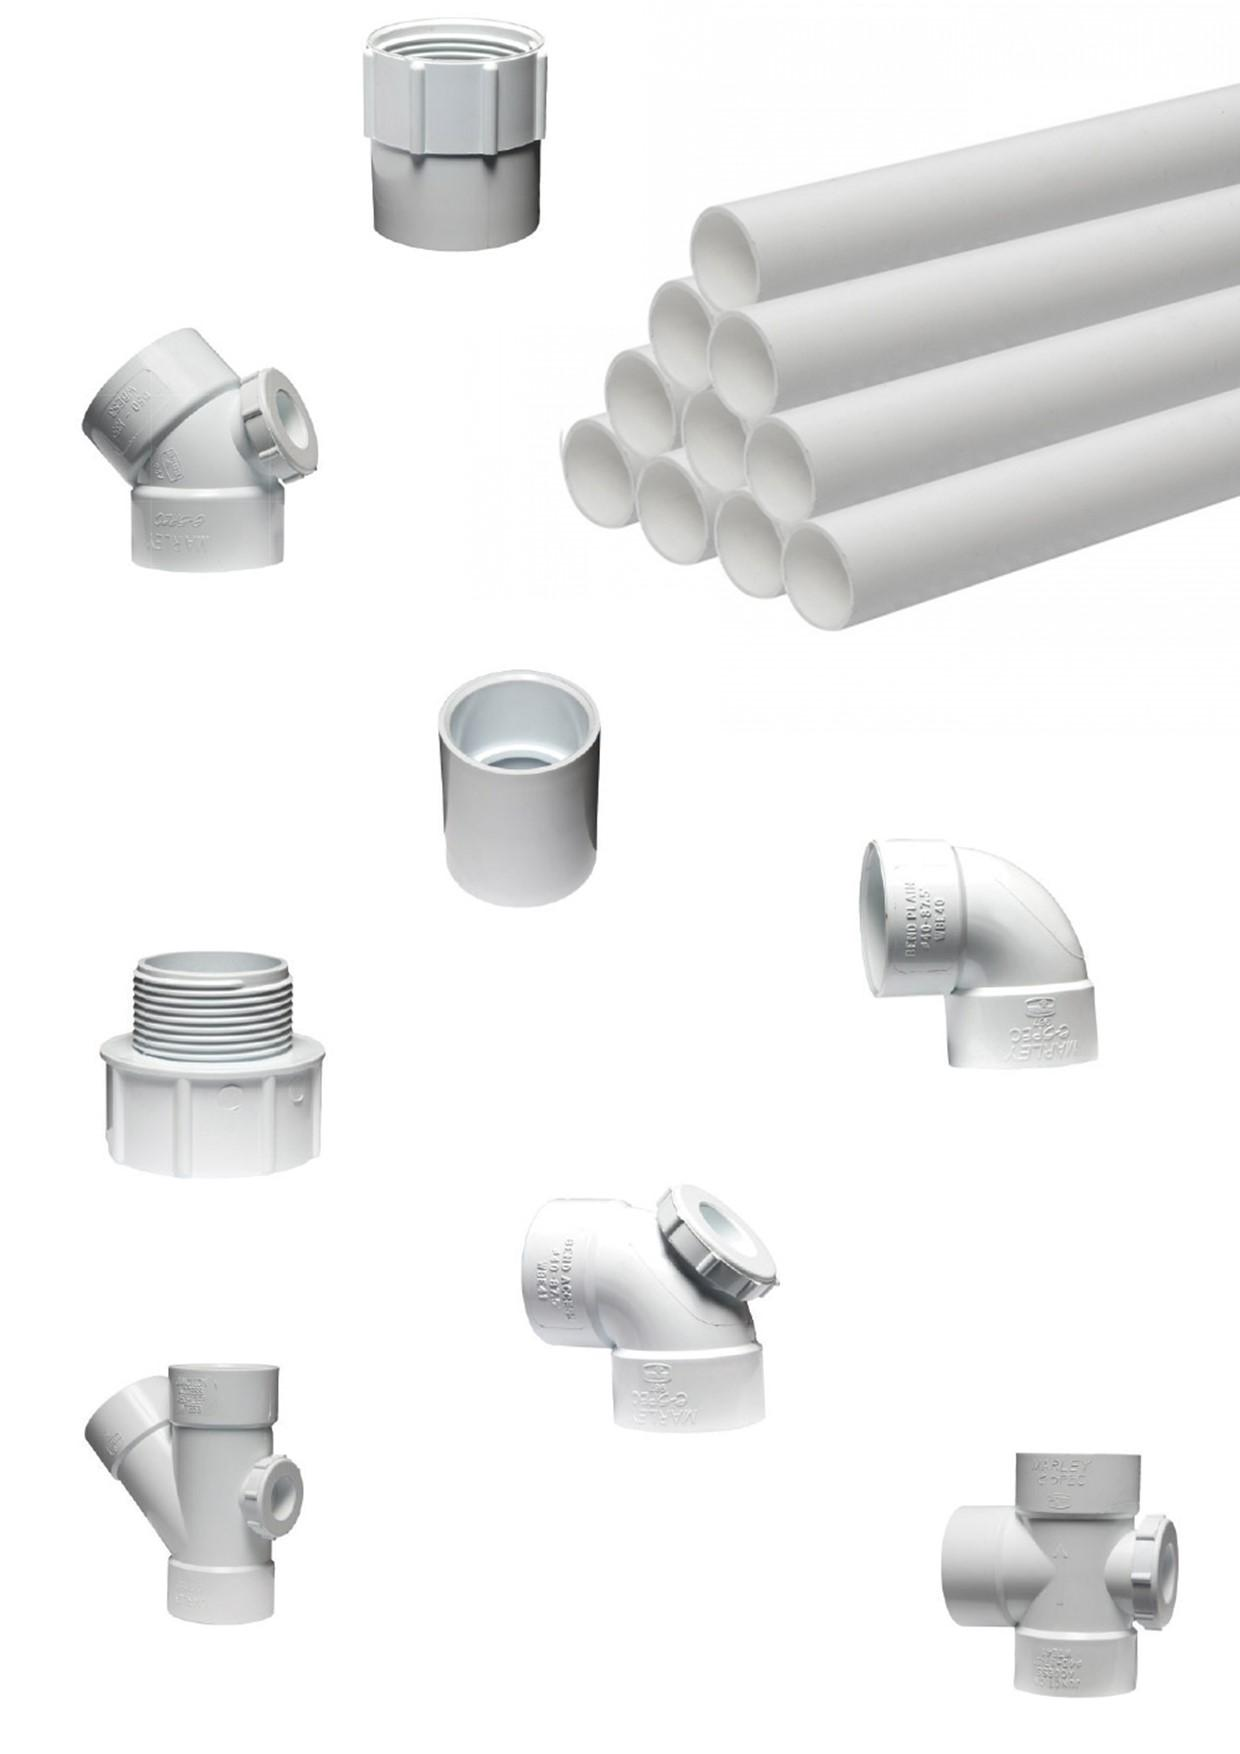 irrigation-suppliers-joints-pvc